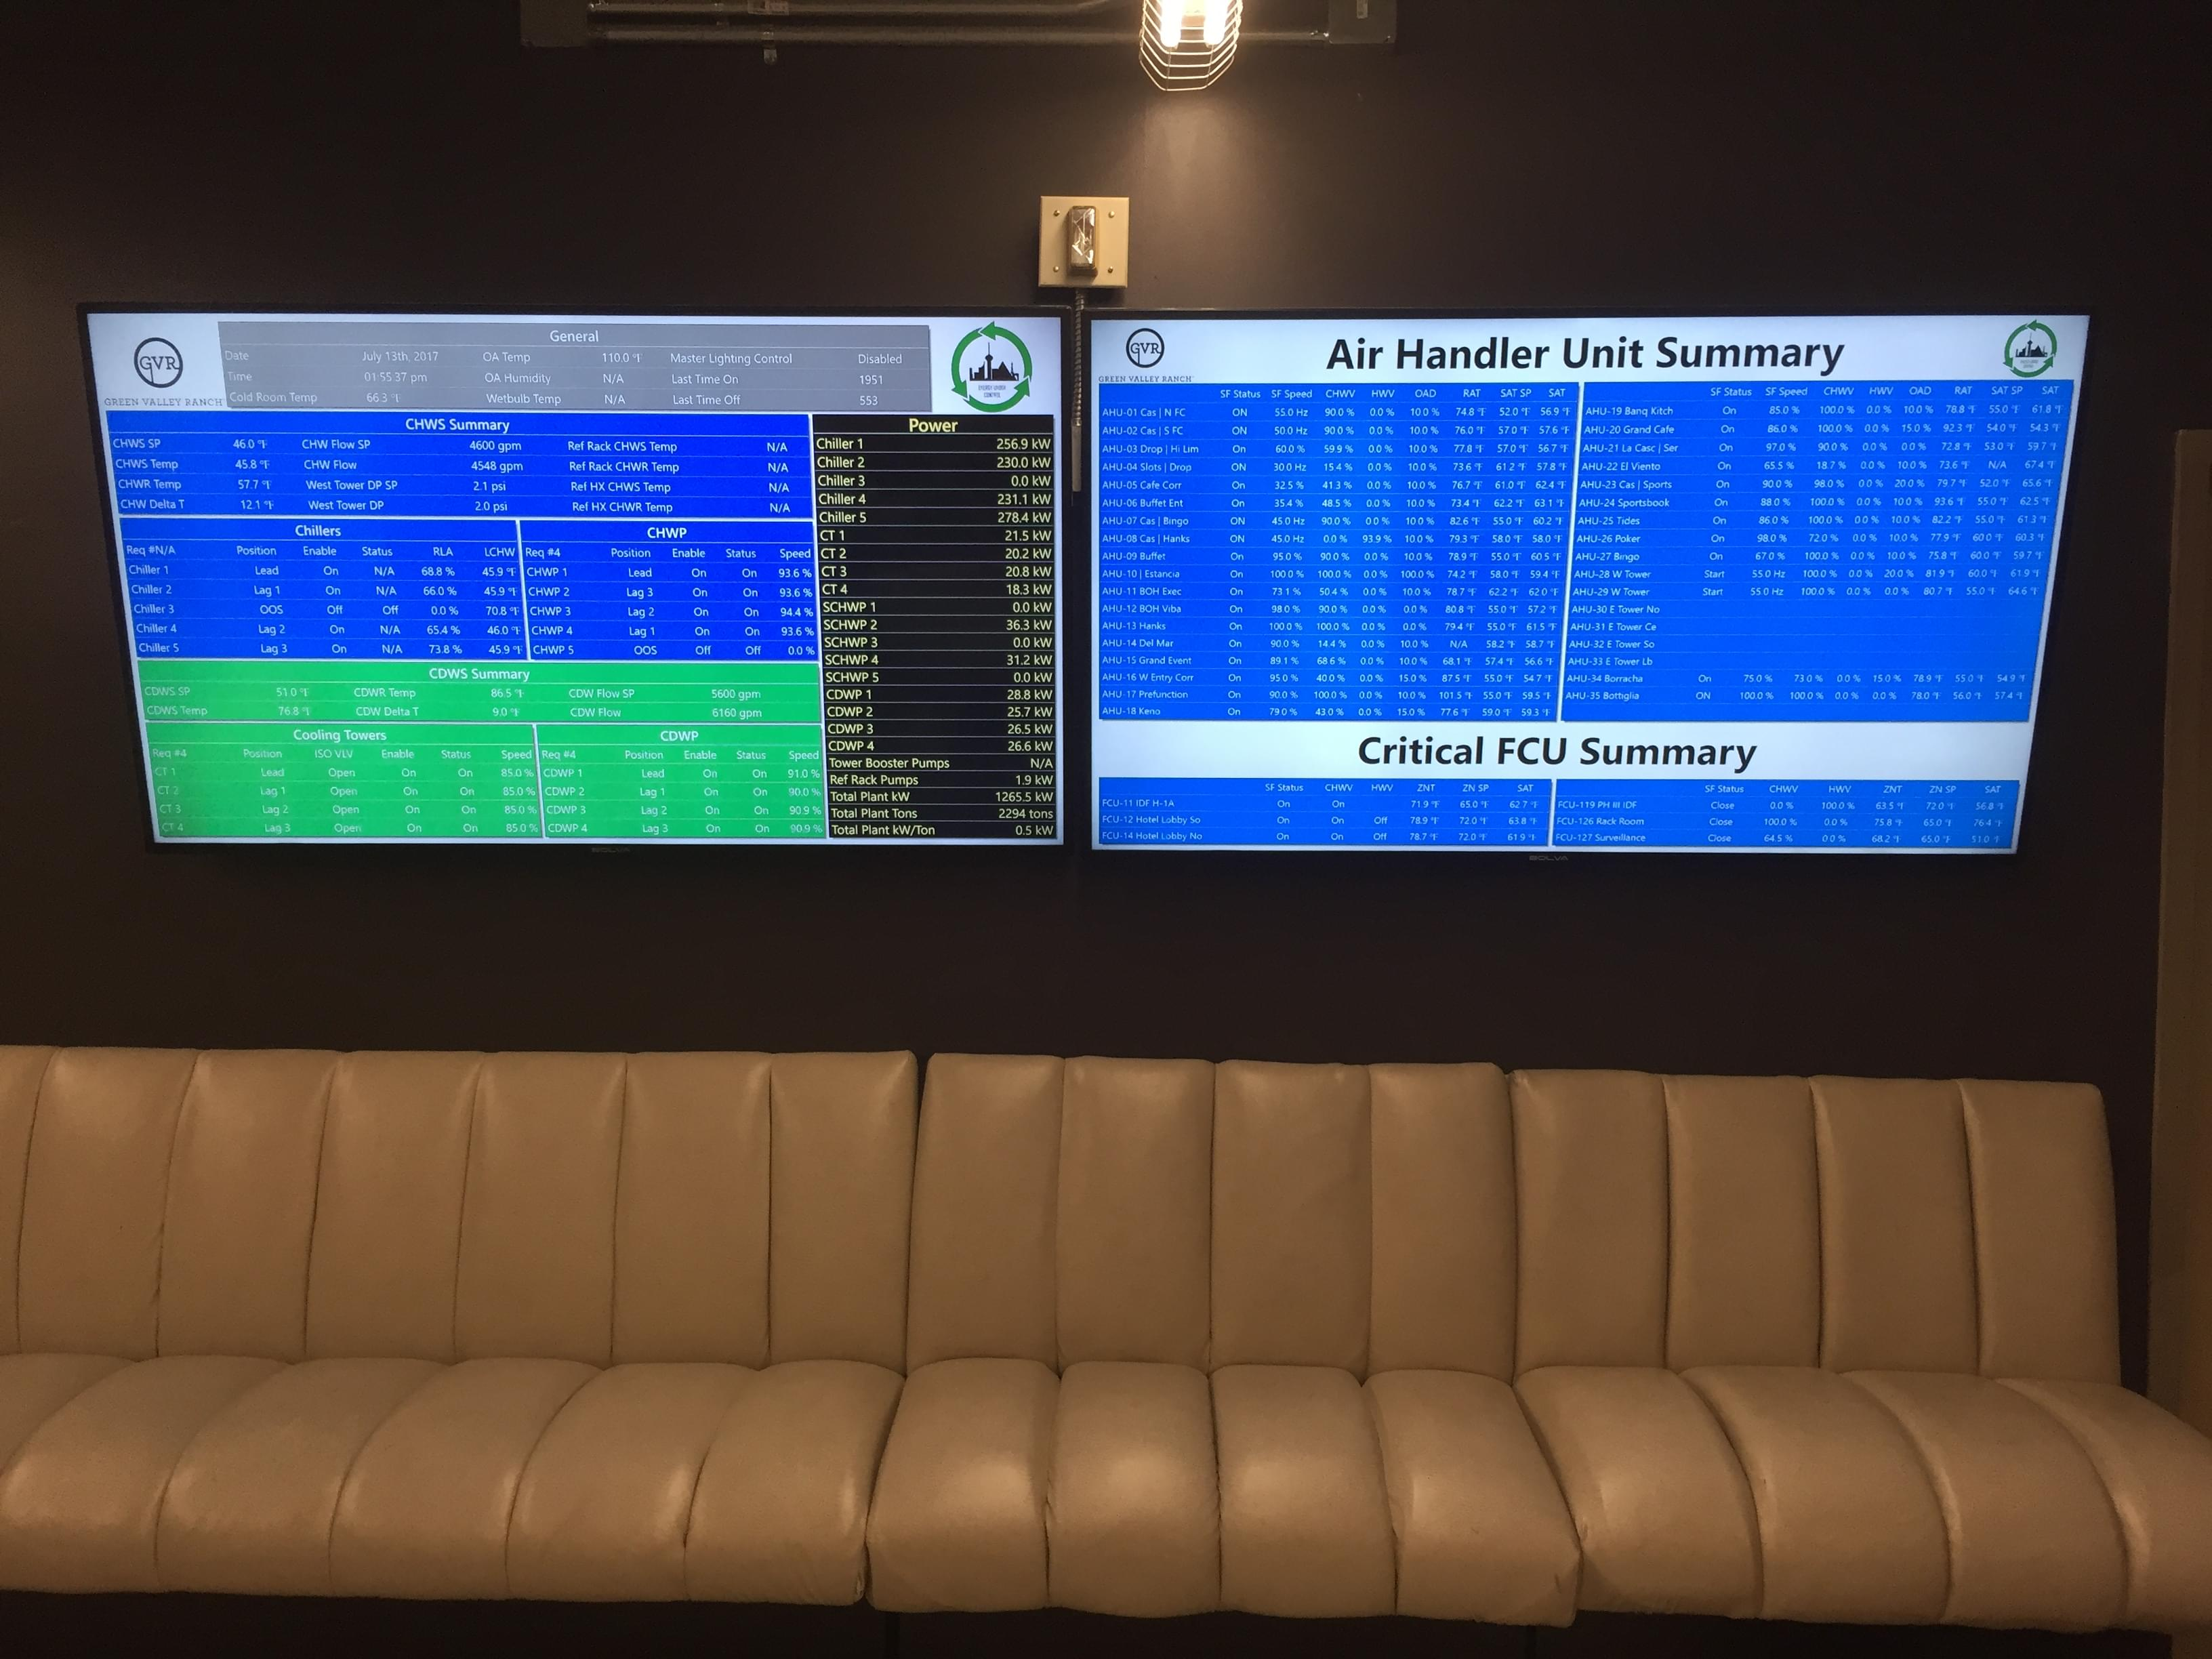 AOG Online 4k Displays at Green Valley Ranch